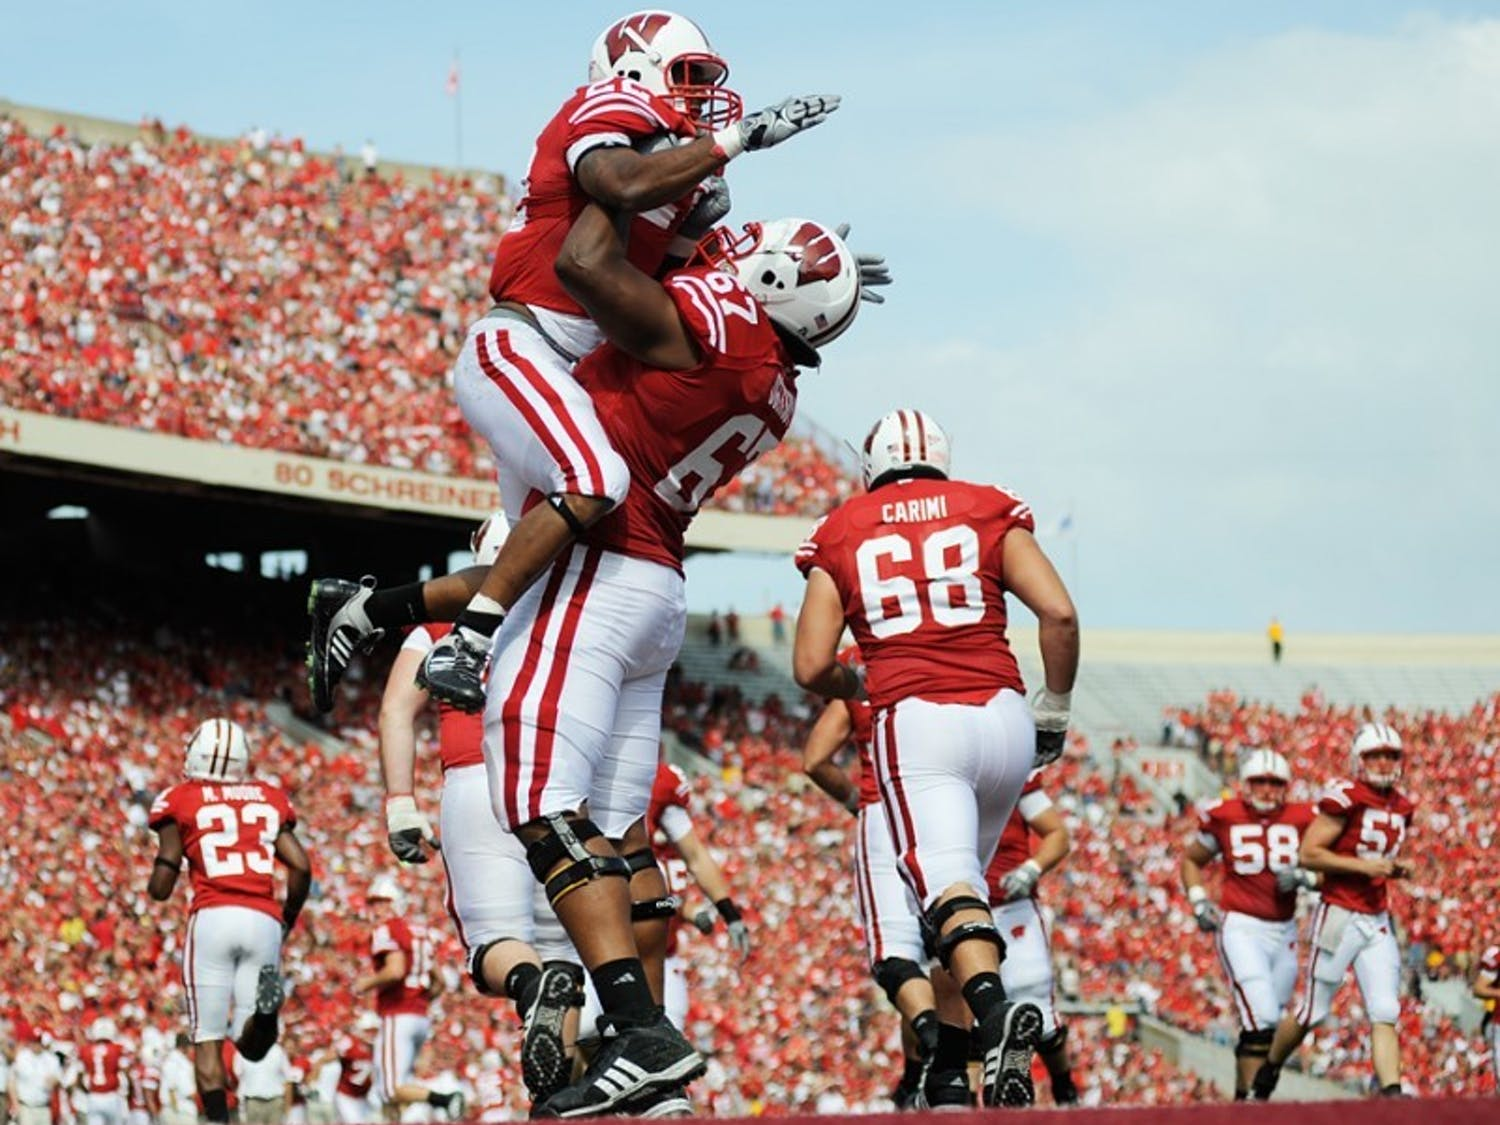 Badgers try for road upset in Columbus